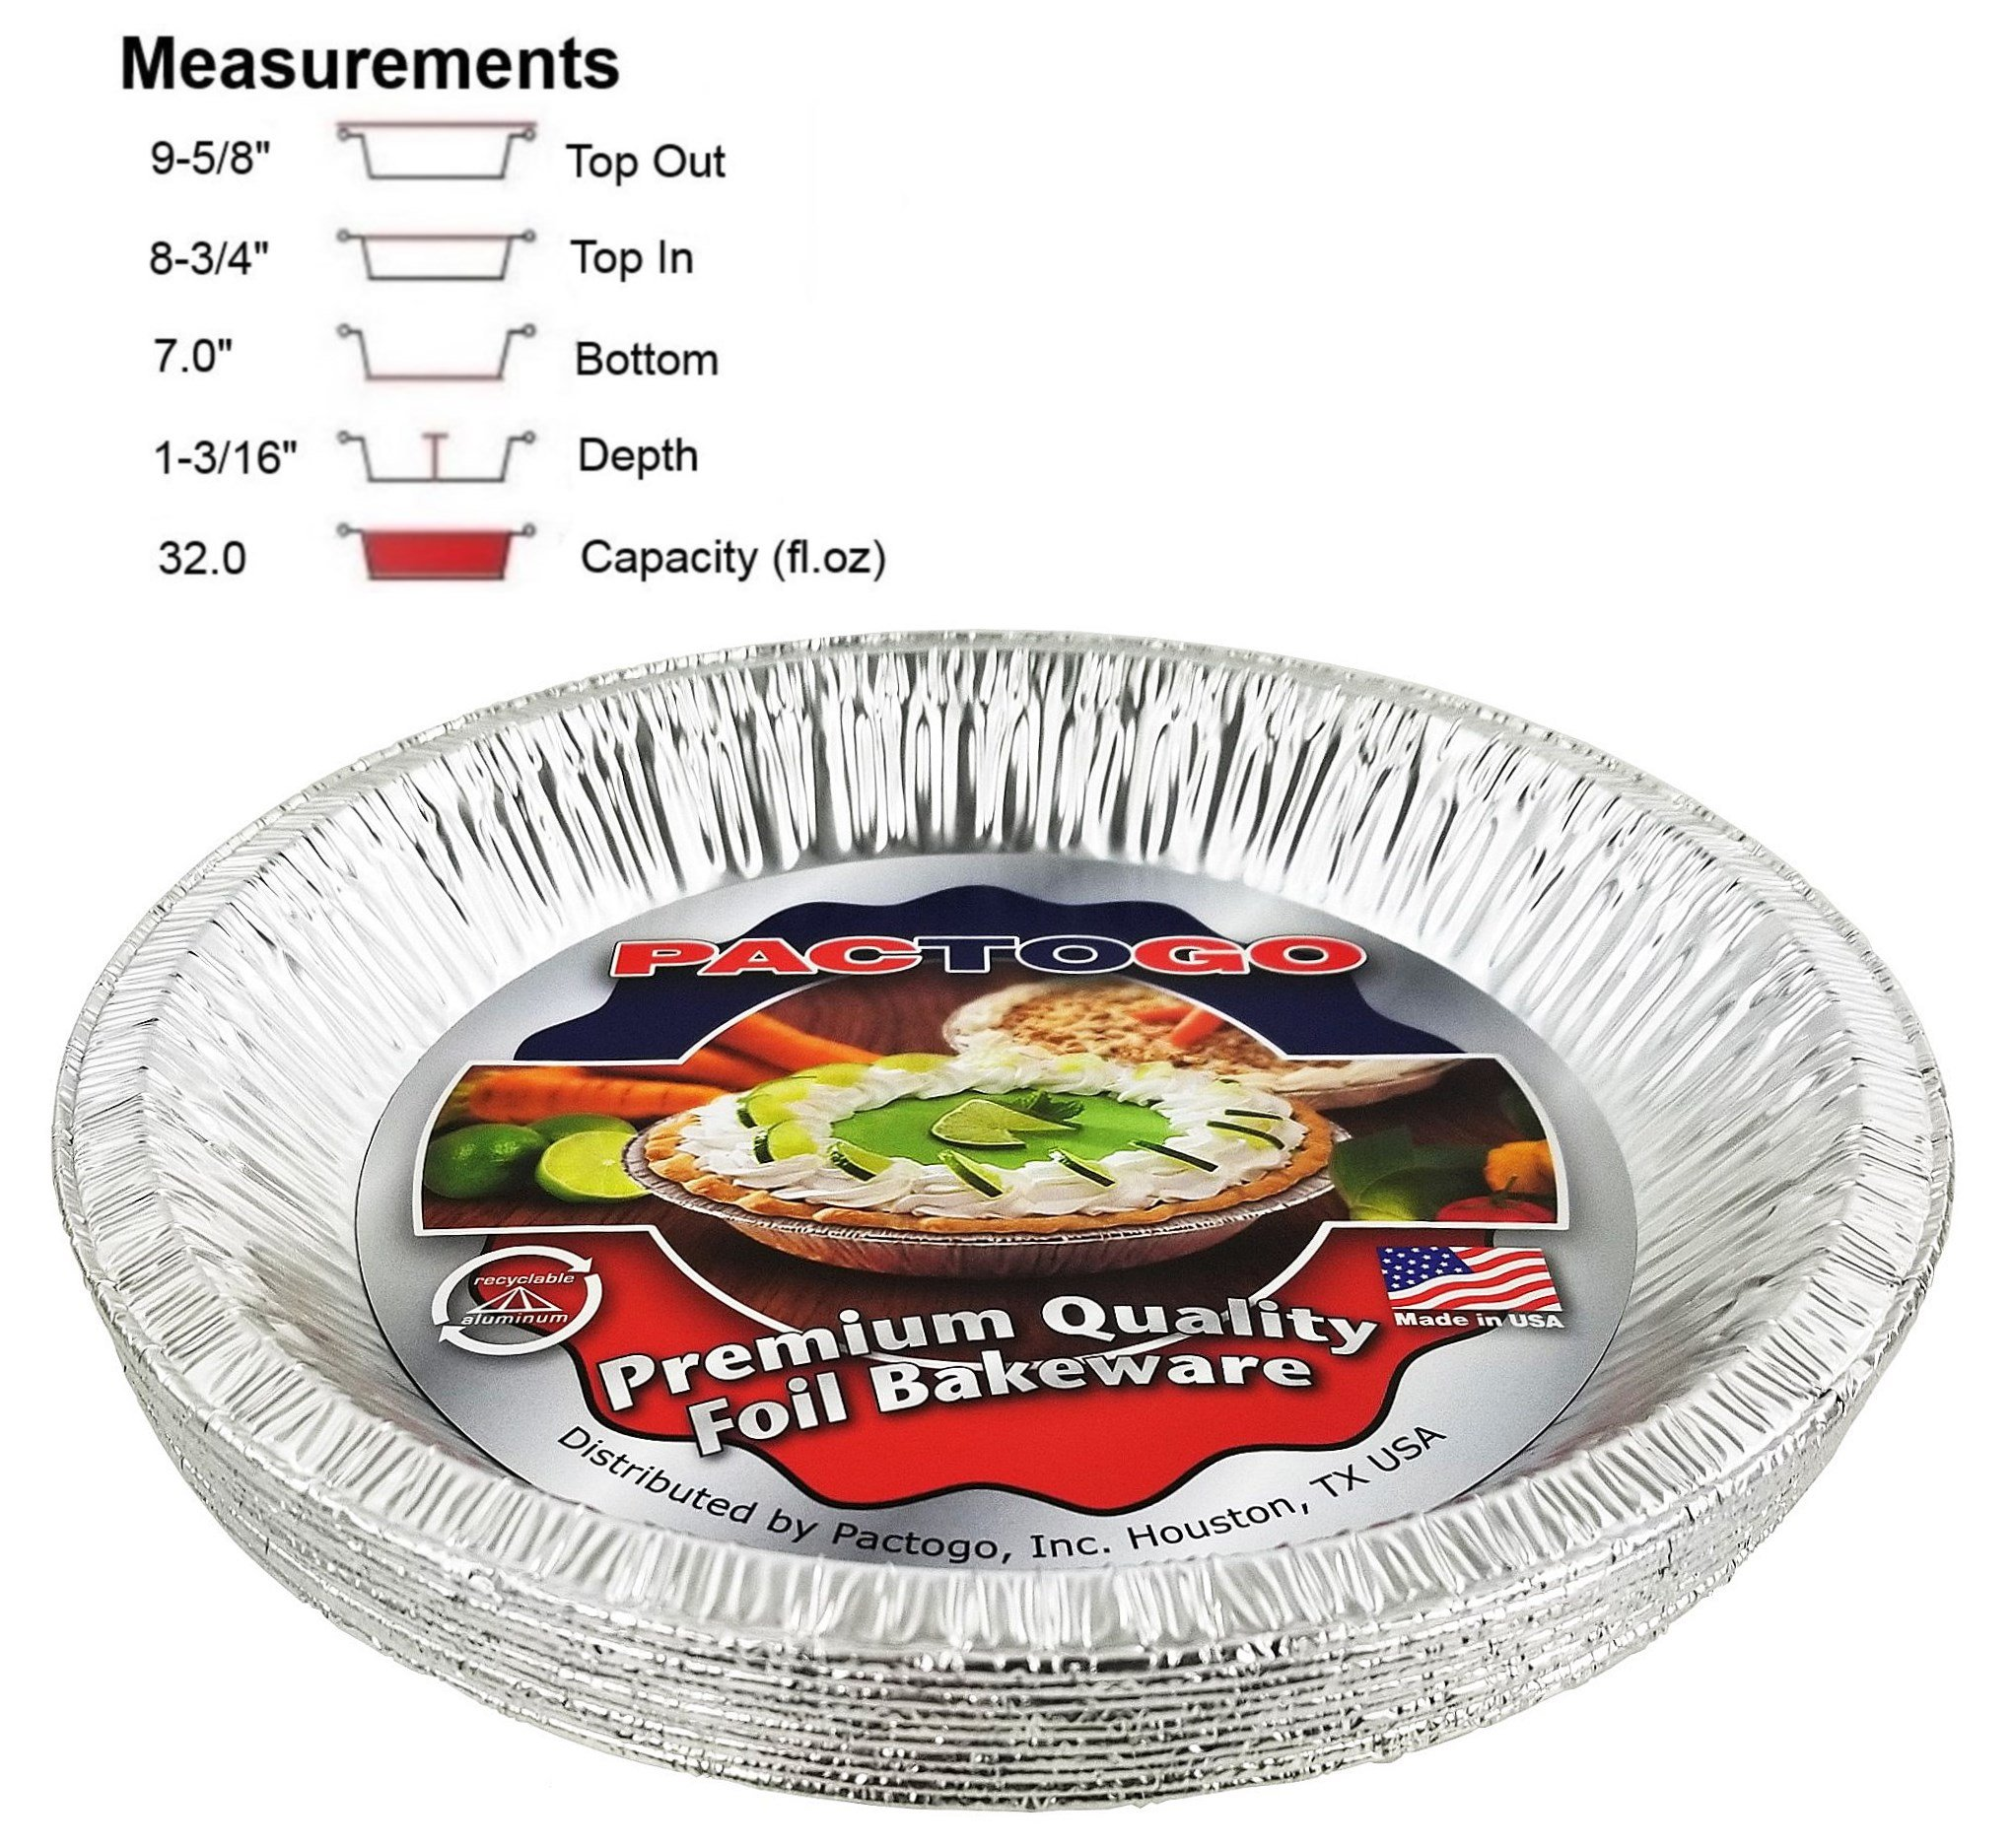 Pactogo 10'' (Actual Top-Out 9-5/8 Inches - Top-In 8-3/4 Inches) Aluminum Foil Pie Pan - Disposable Baking Tin Plates (Pack of 12)